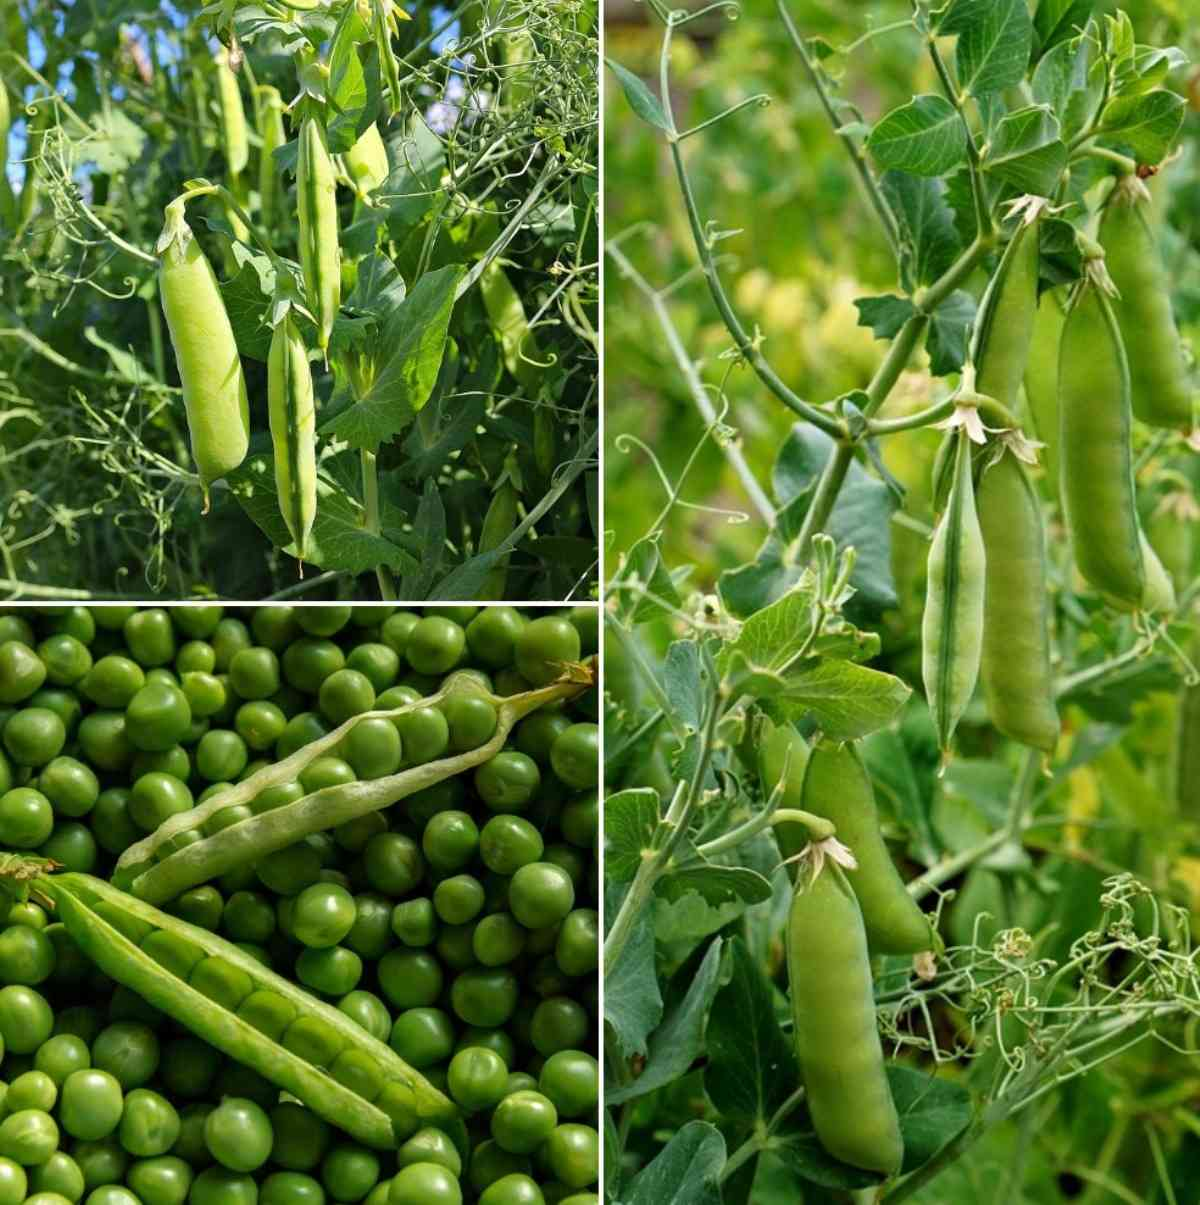 Growing Garden Peas: How To Grow Green Peas From Seeds (Matar) At Home